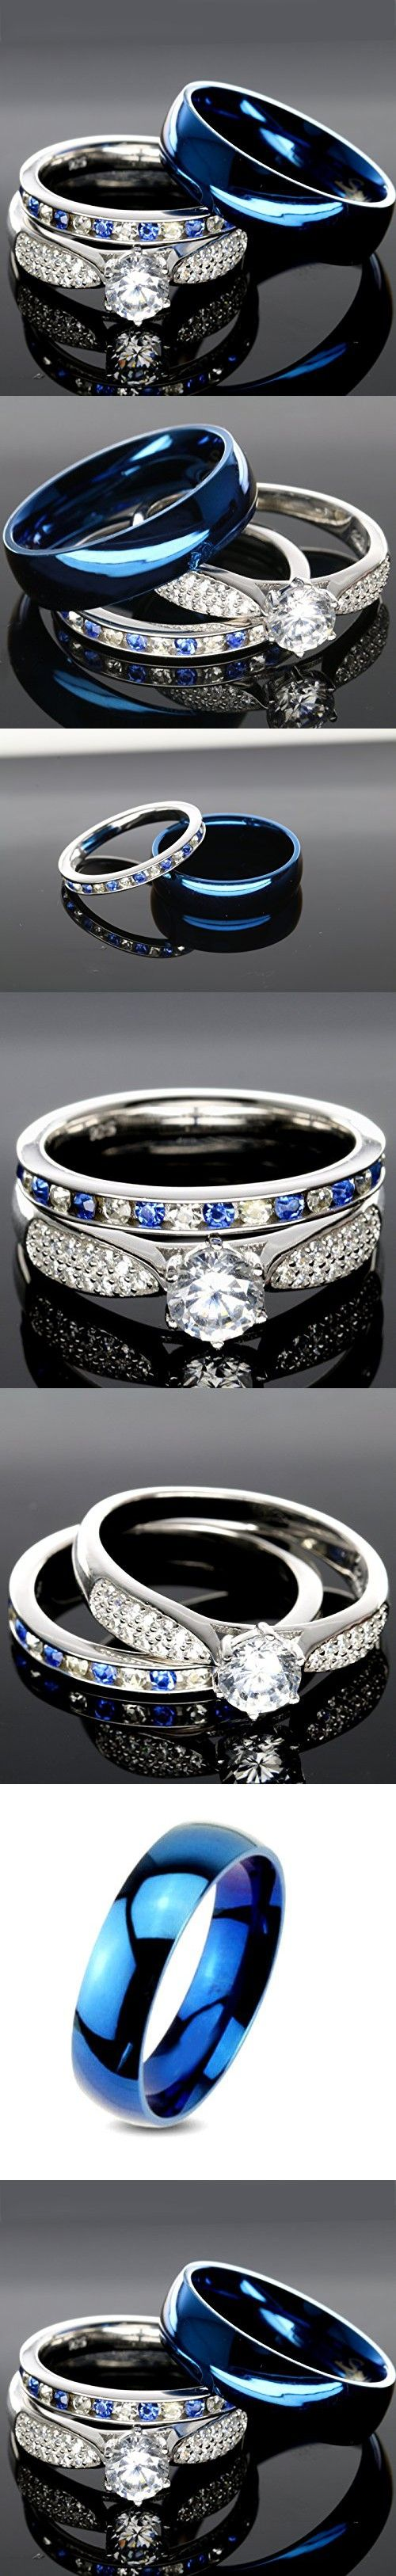 engagement rhinestone diamond photos rings stainless yoyoon white nyfcgdf promise wedding titanium band stylish ring steel thin vfxwinv s women simple crystal of com